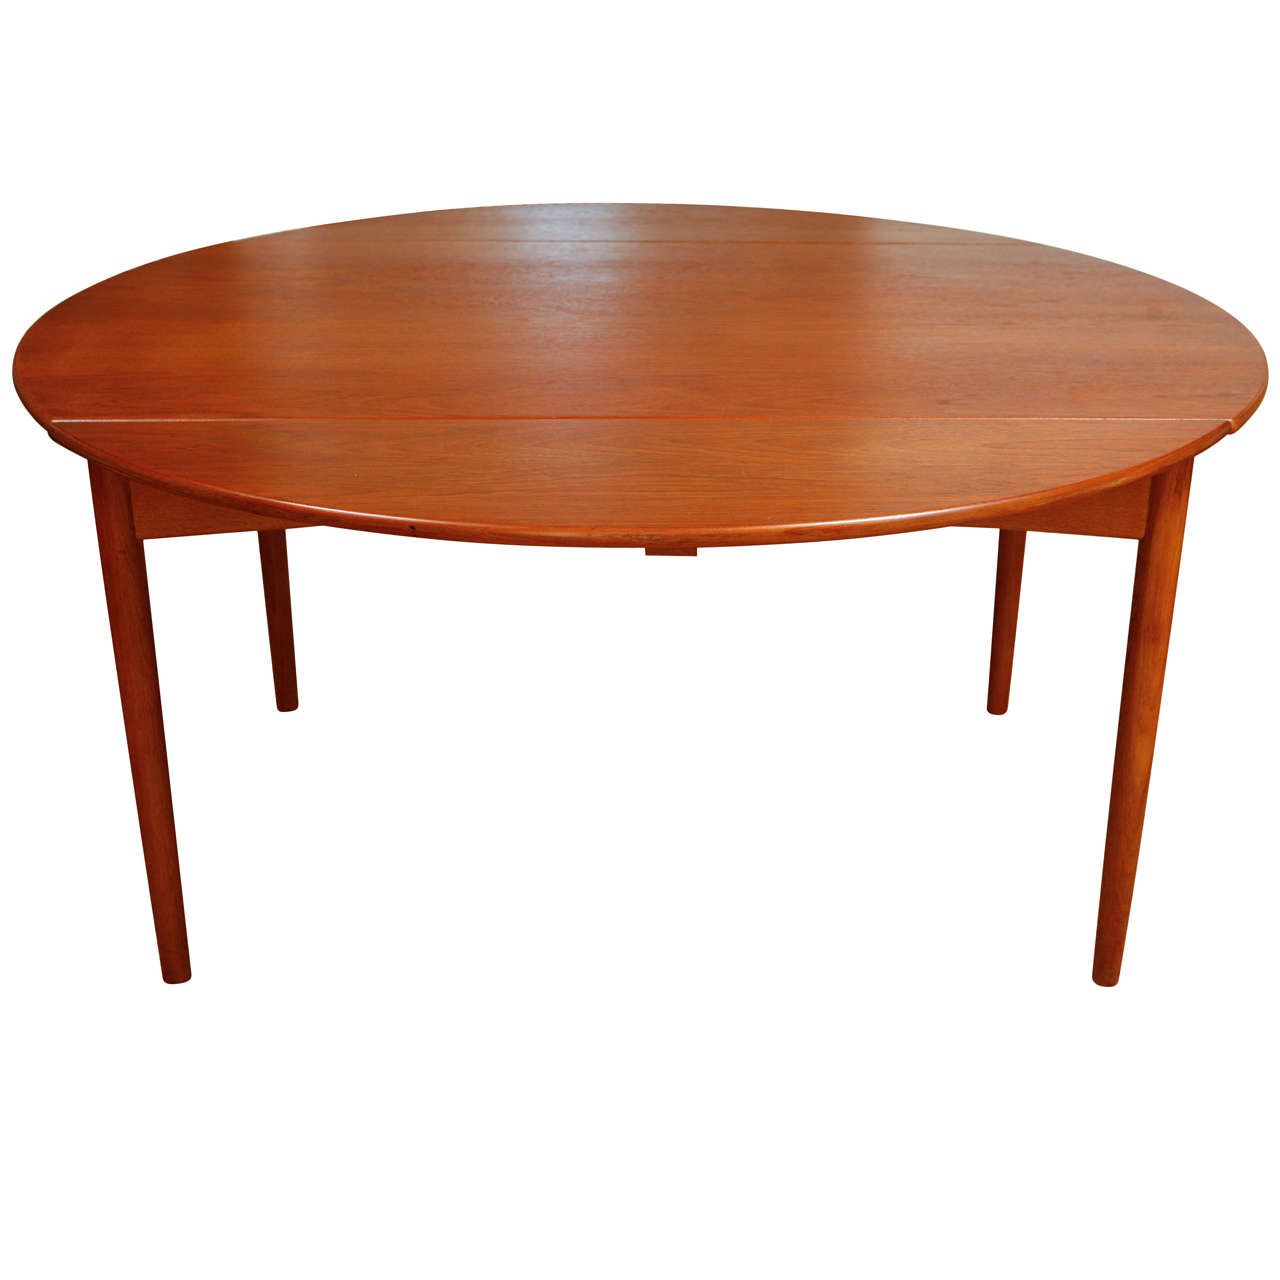 Danish dining table with two leaves at 1stdibs for Table with that left